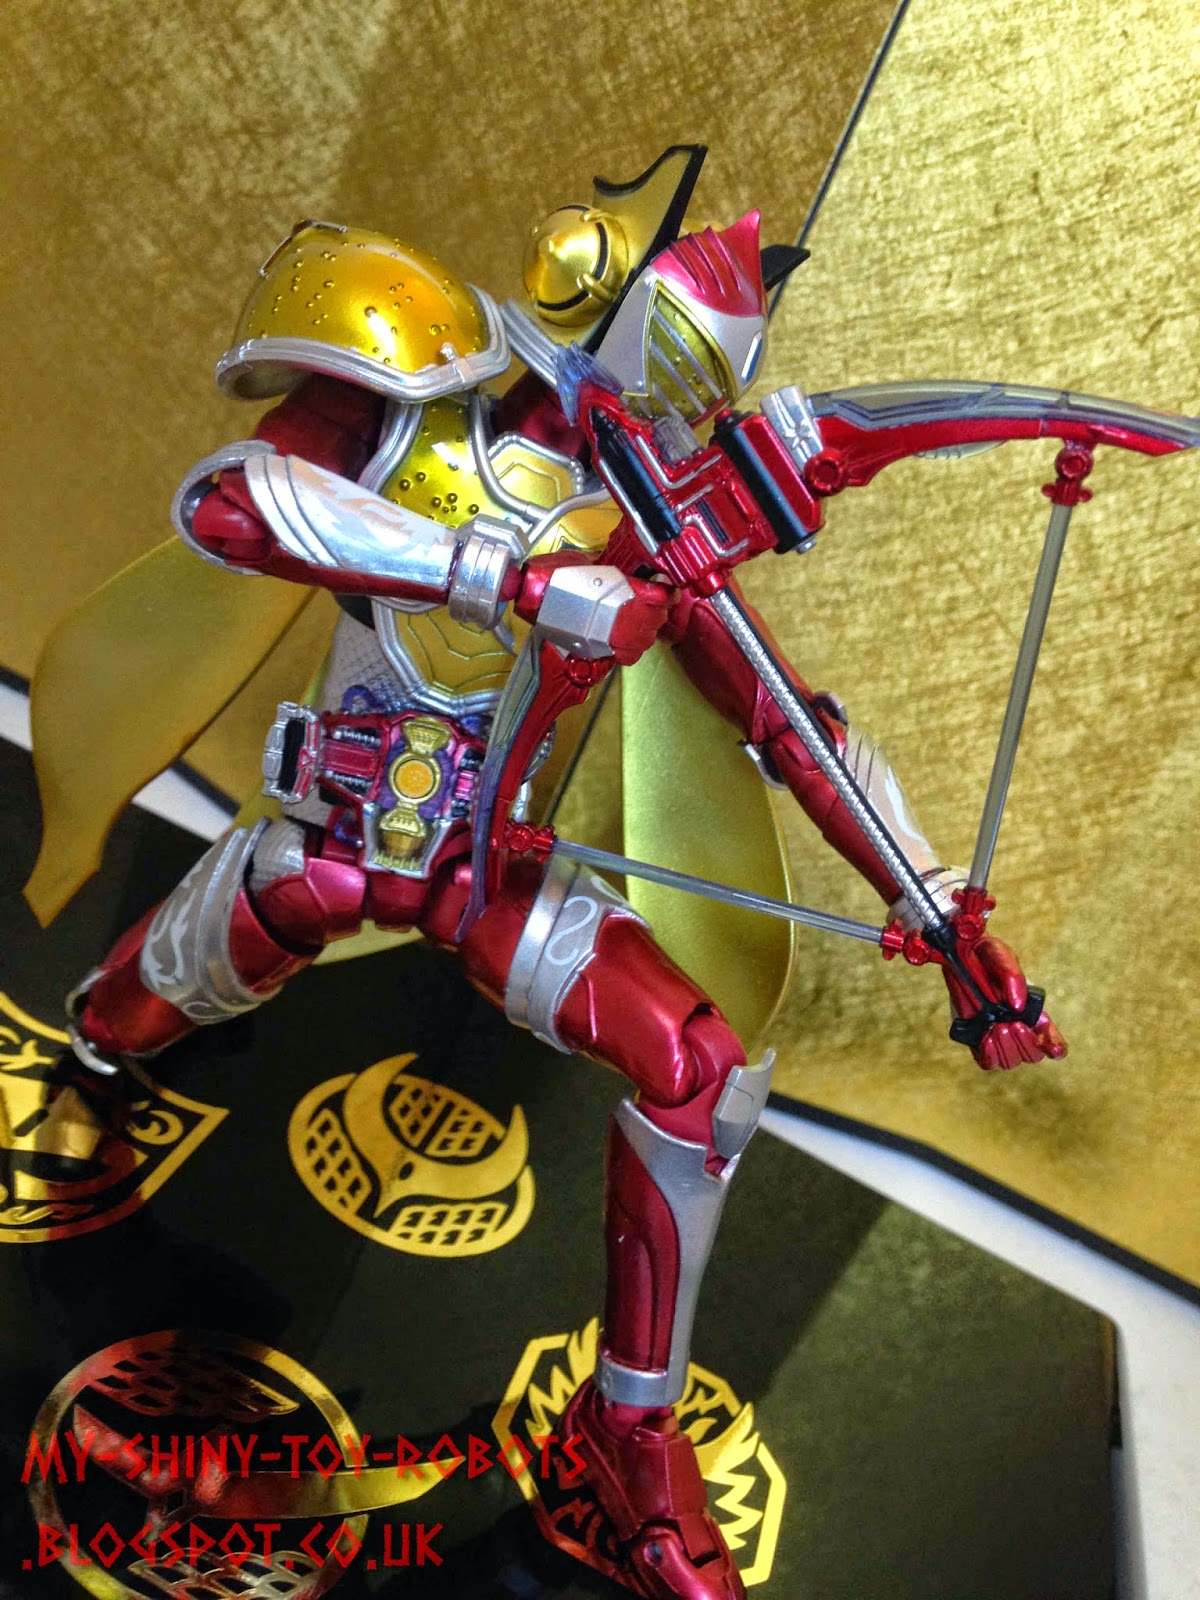 Strange posing copied from Bandai